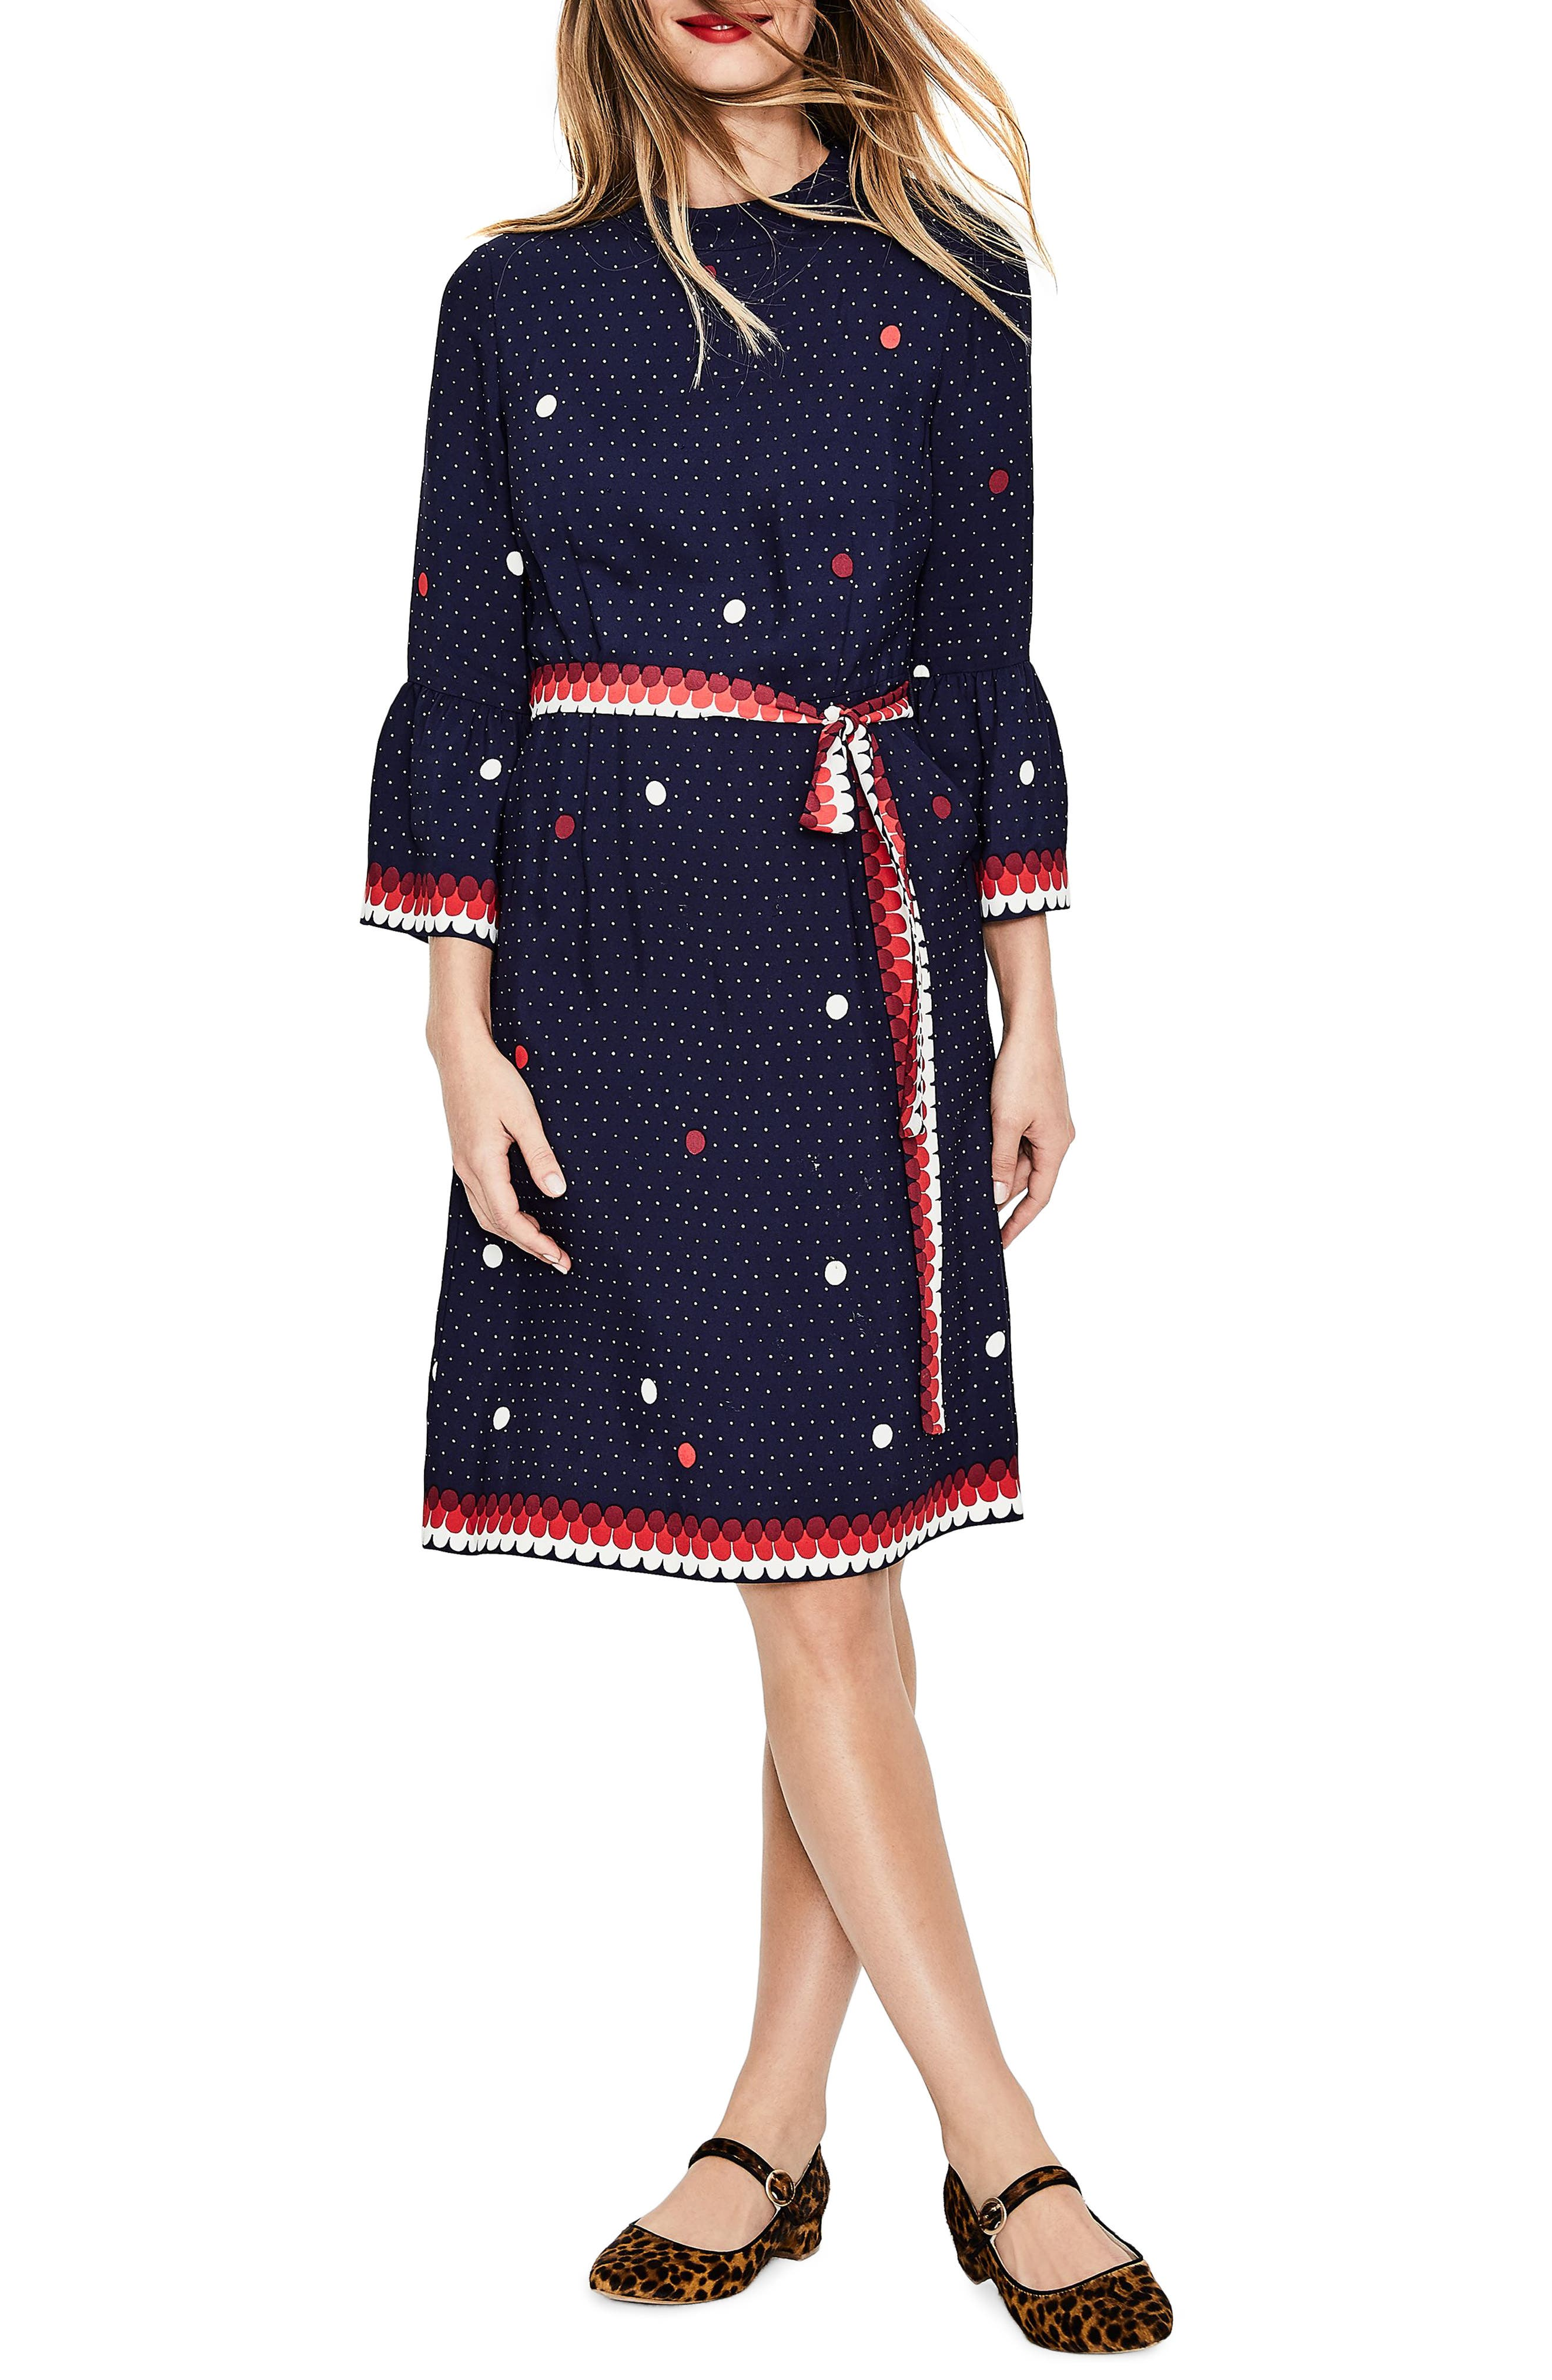 Ruffle Sleeve Polka Dot DRess,                         Main,                         color, Navy/ Spot Border